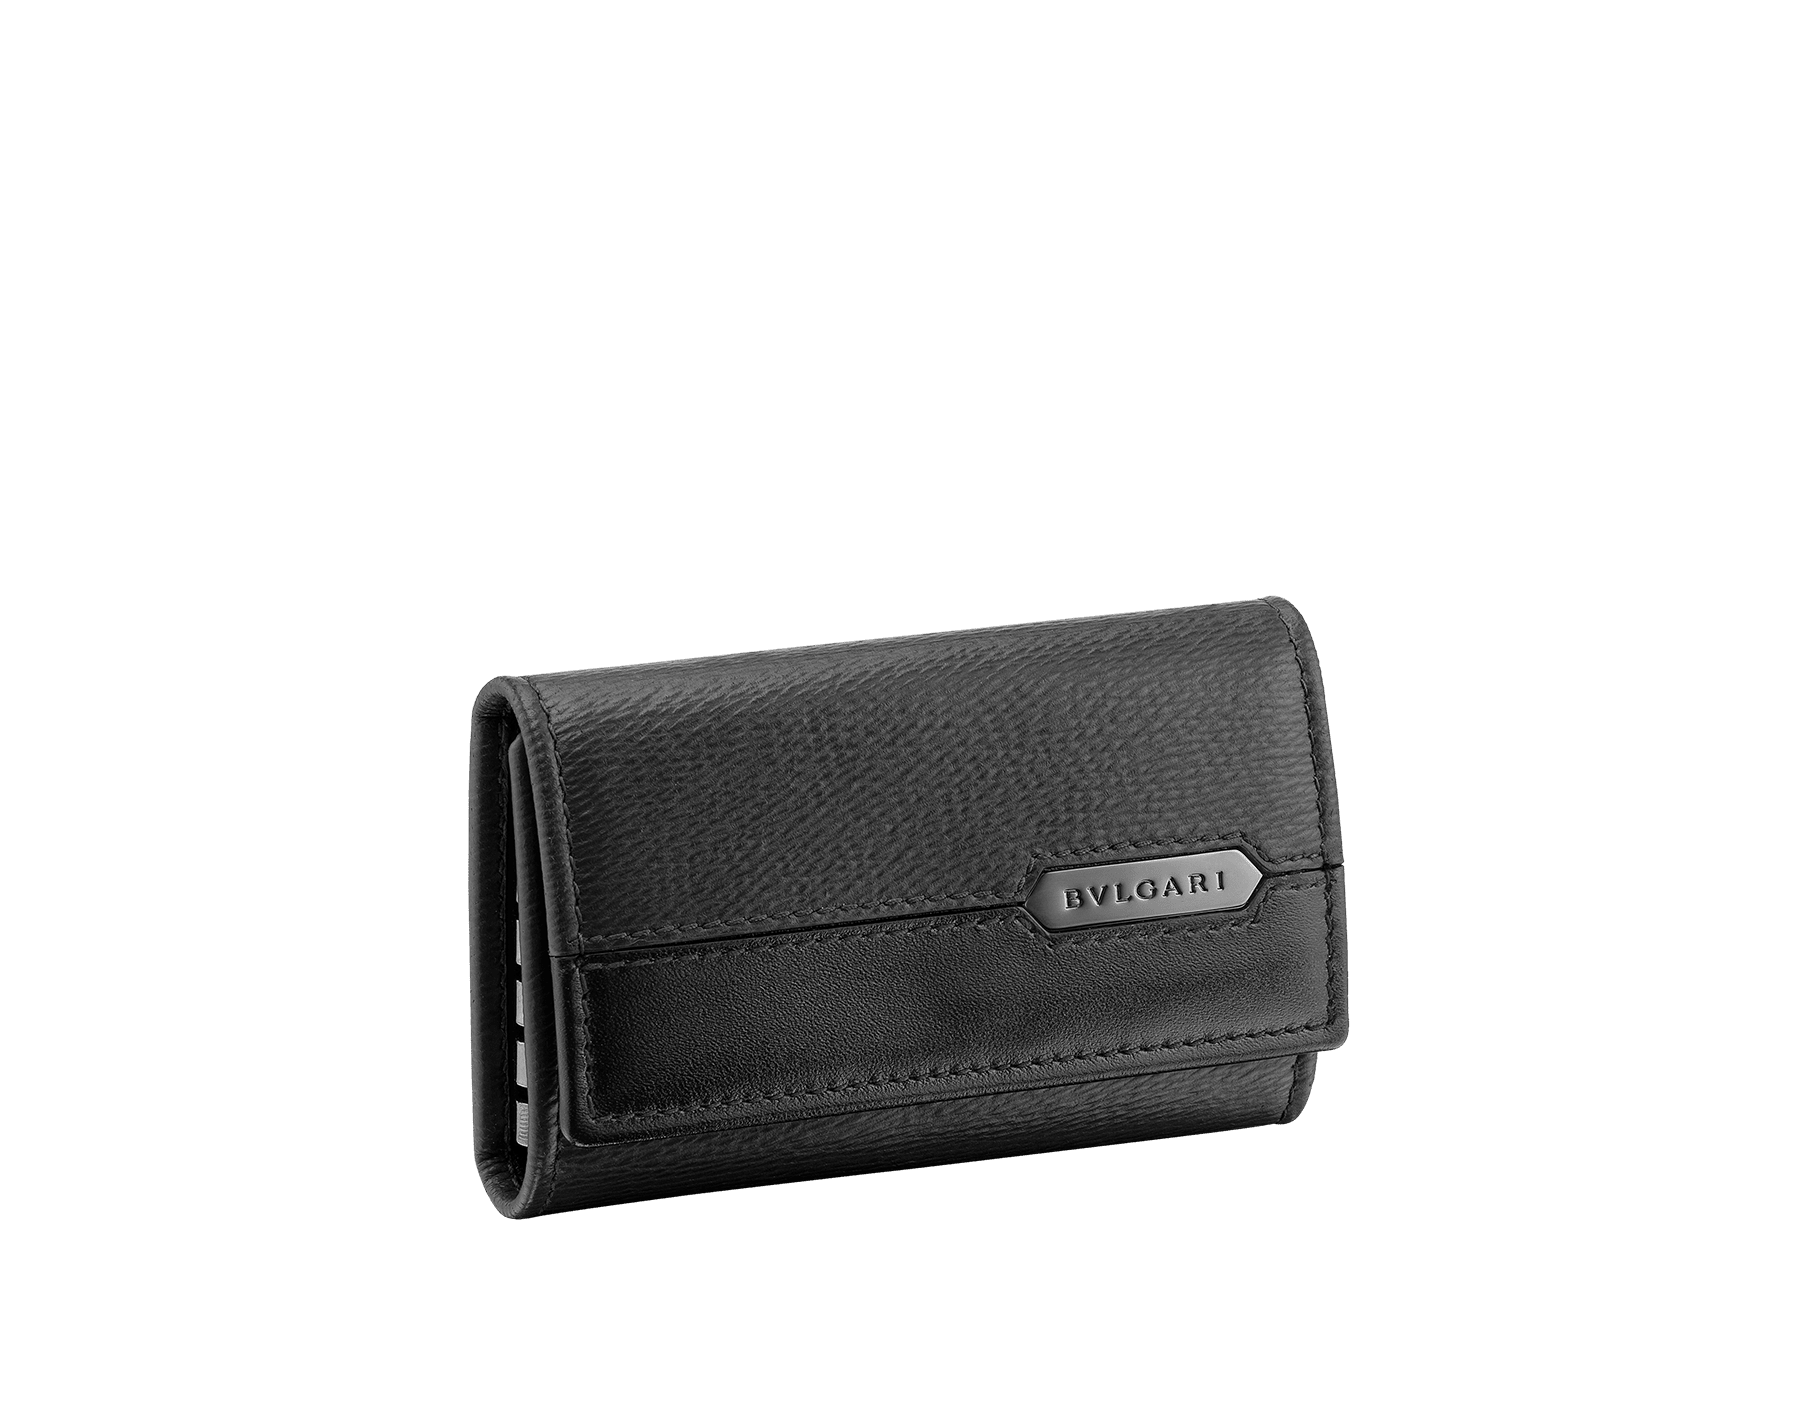 Keyholder in black grazed calf leather and black calf leather. Bulgari logo on metal plate featuring the Scaglie motif finished in dark ruthenium. 280887 image 1